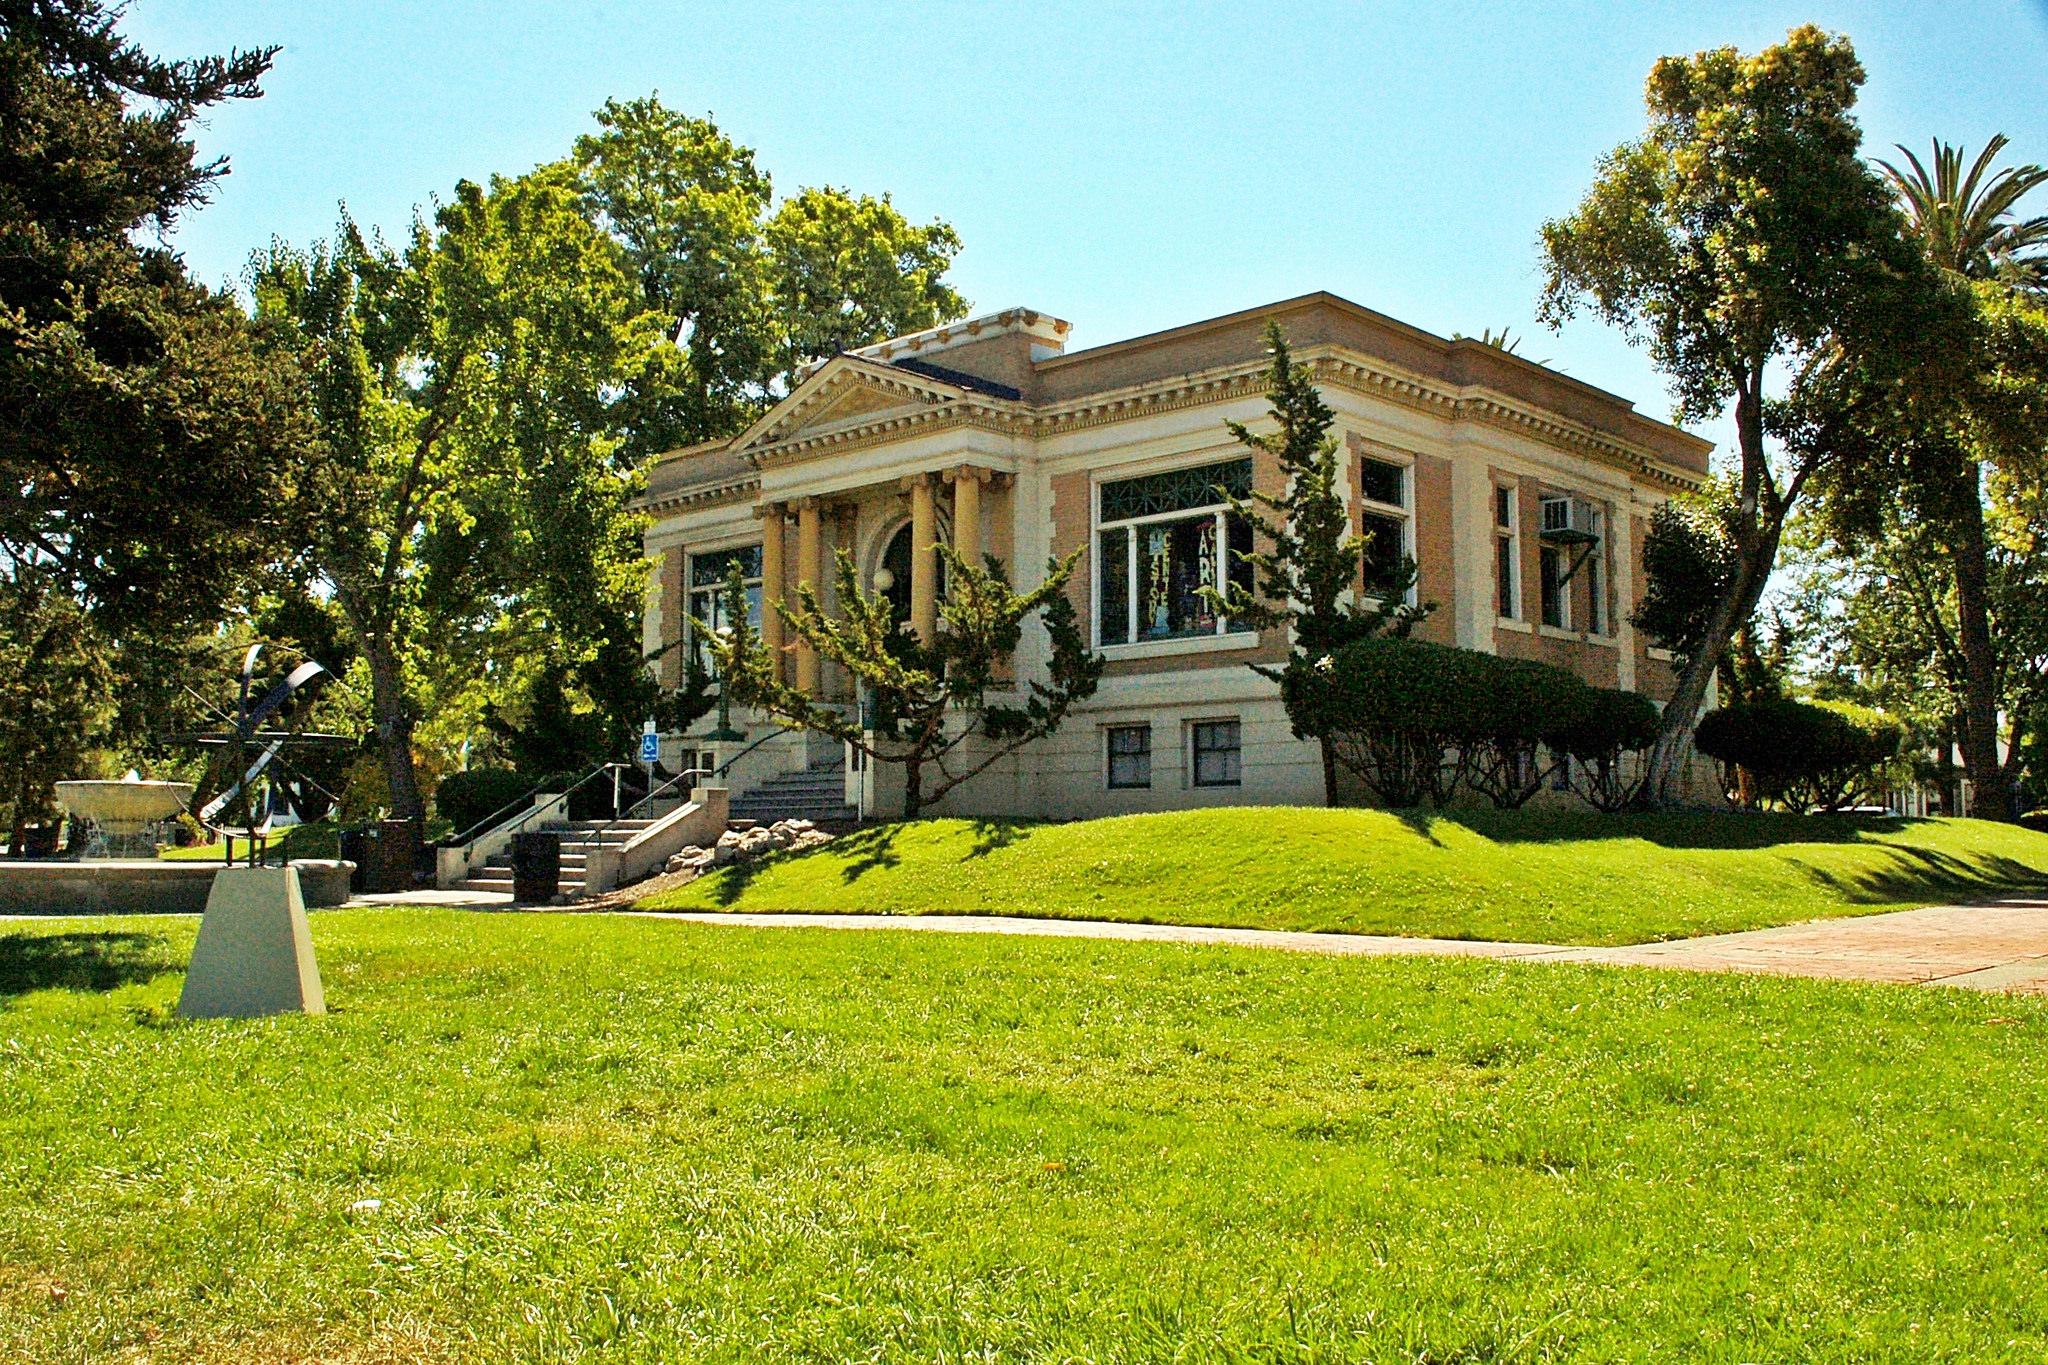 Since September 1974 the former Carnegie Library has housed the Livermore Heritage Guild's History Center and the Livermore Art Association's art gallery.